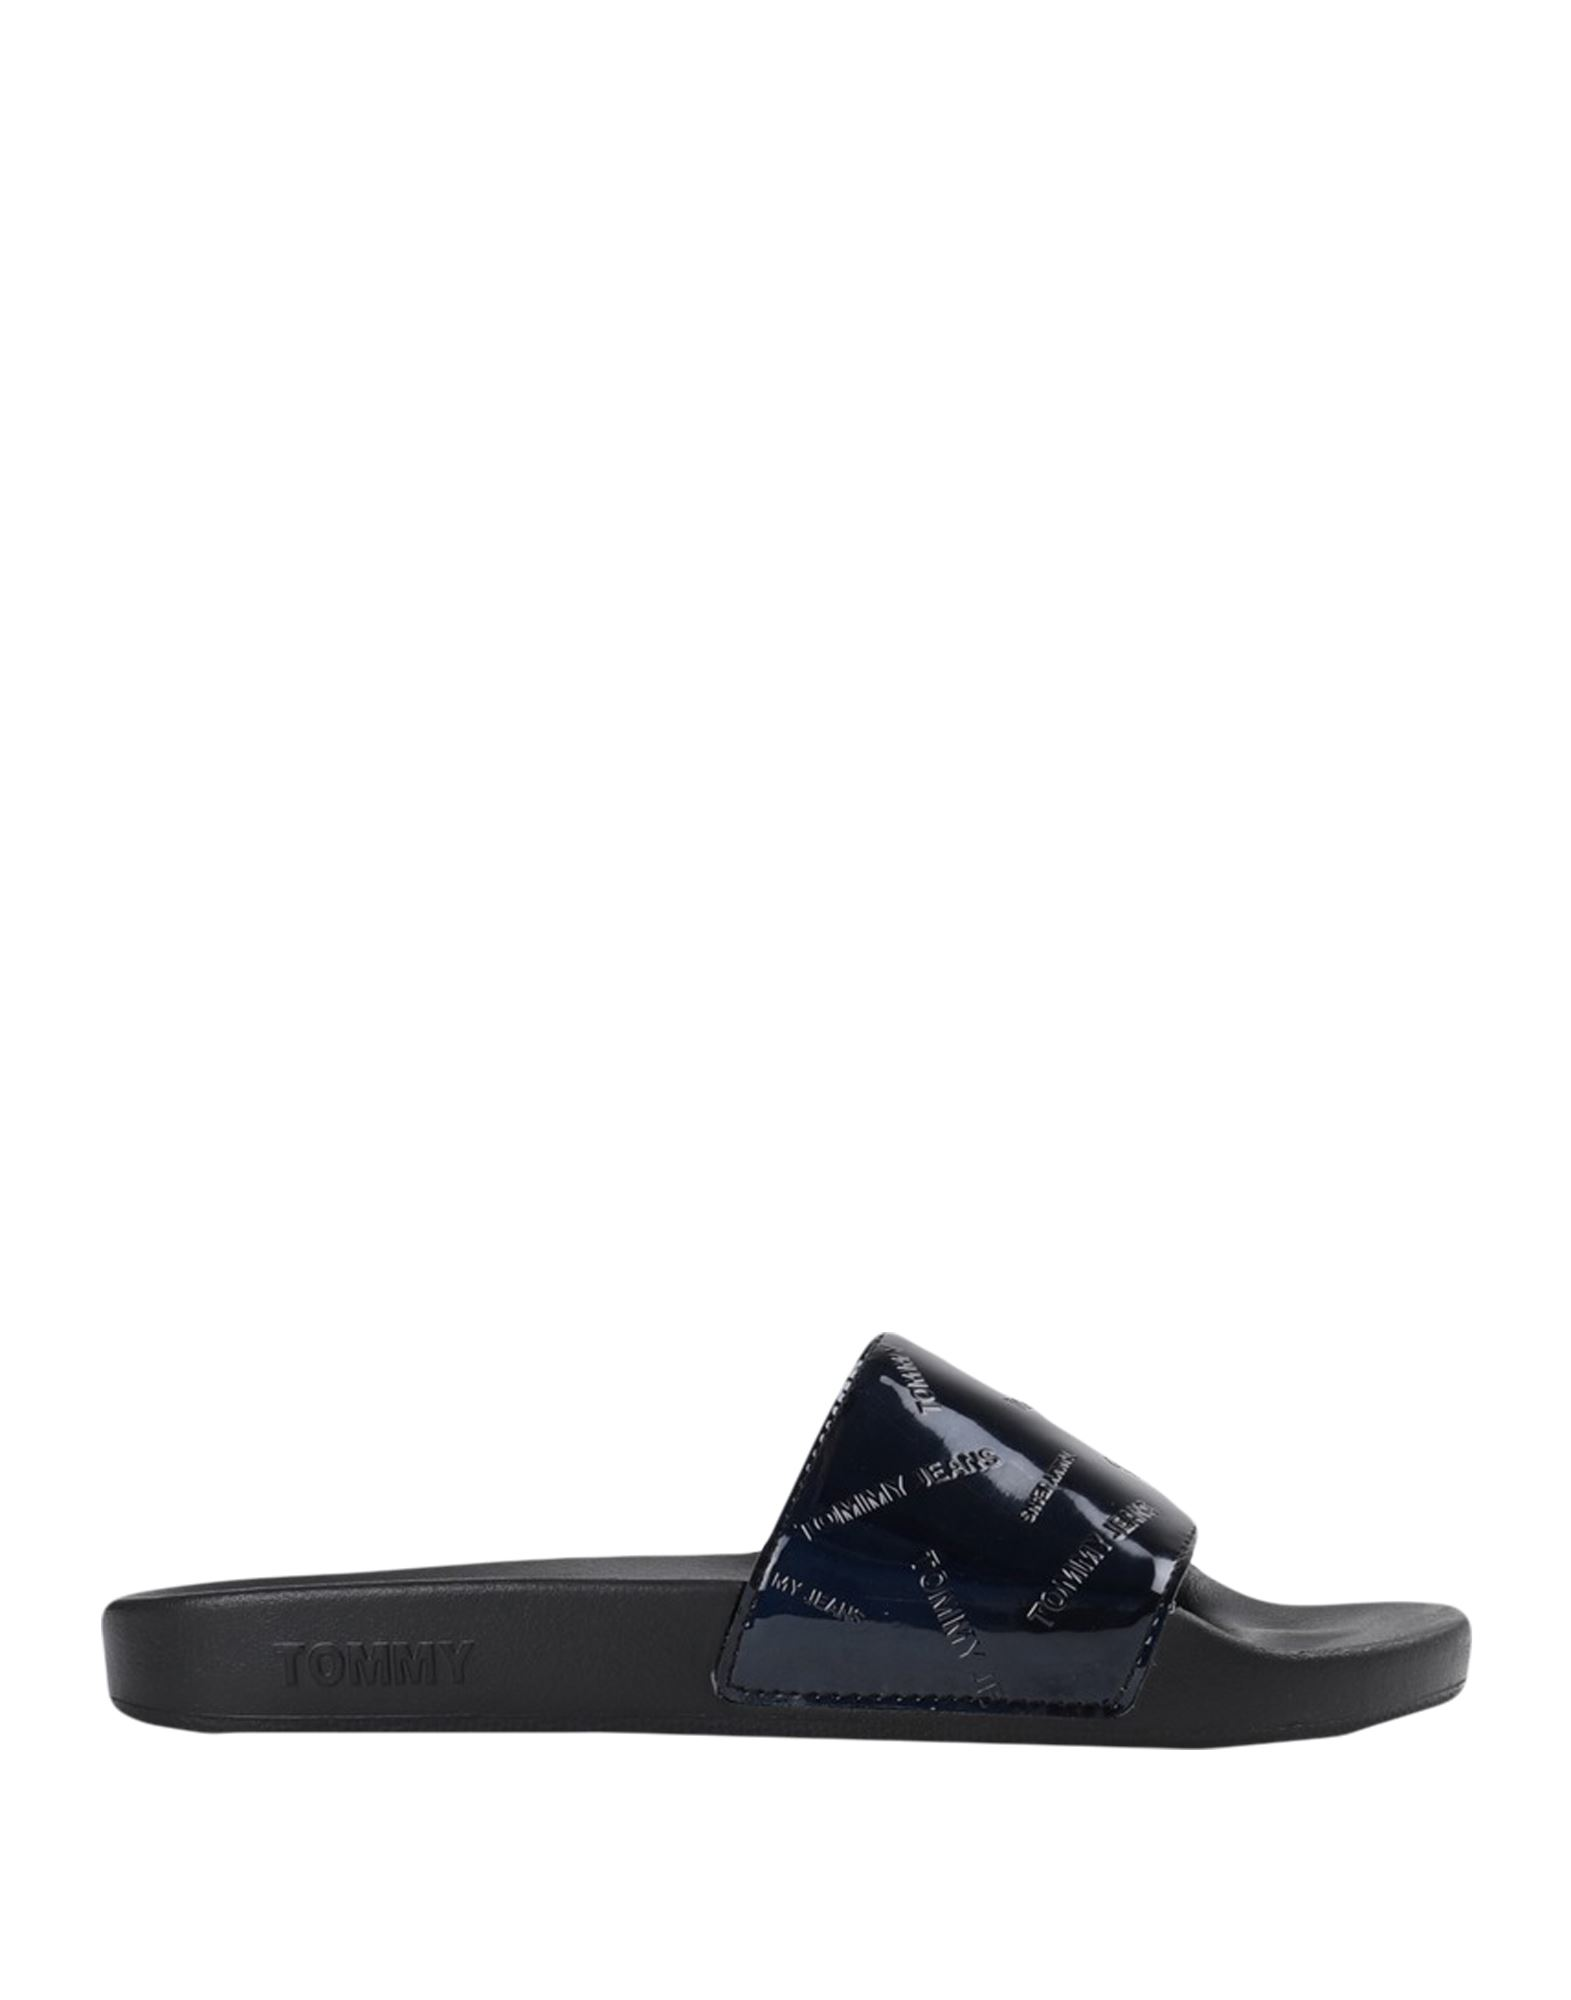 TOMMY JEANS Sandals - Item 17021201